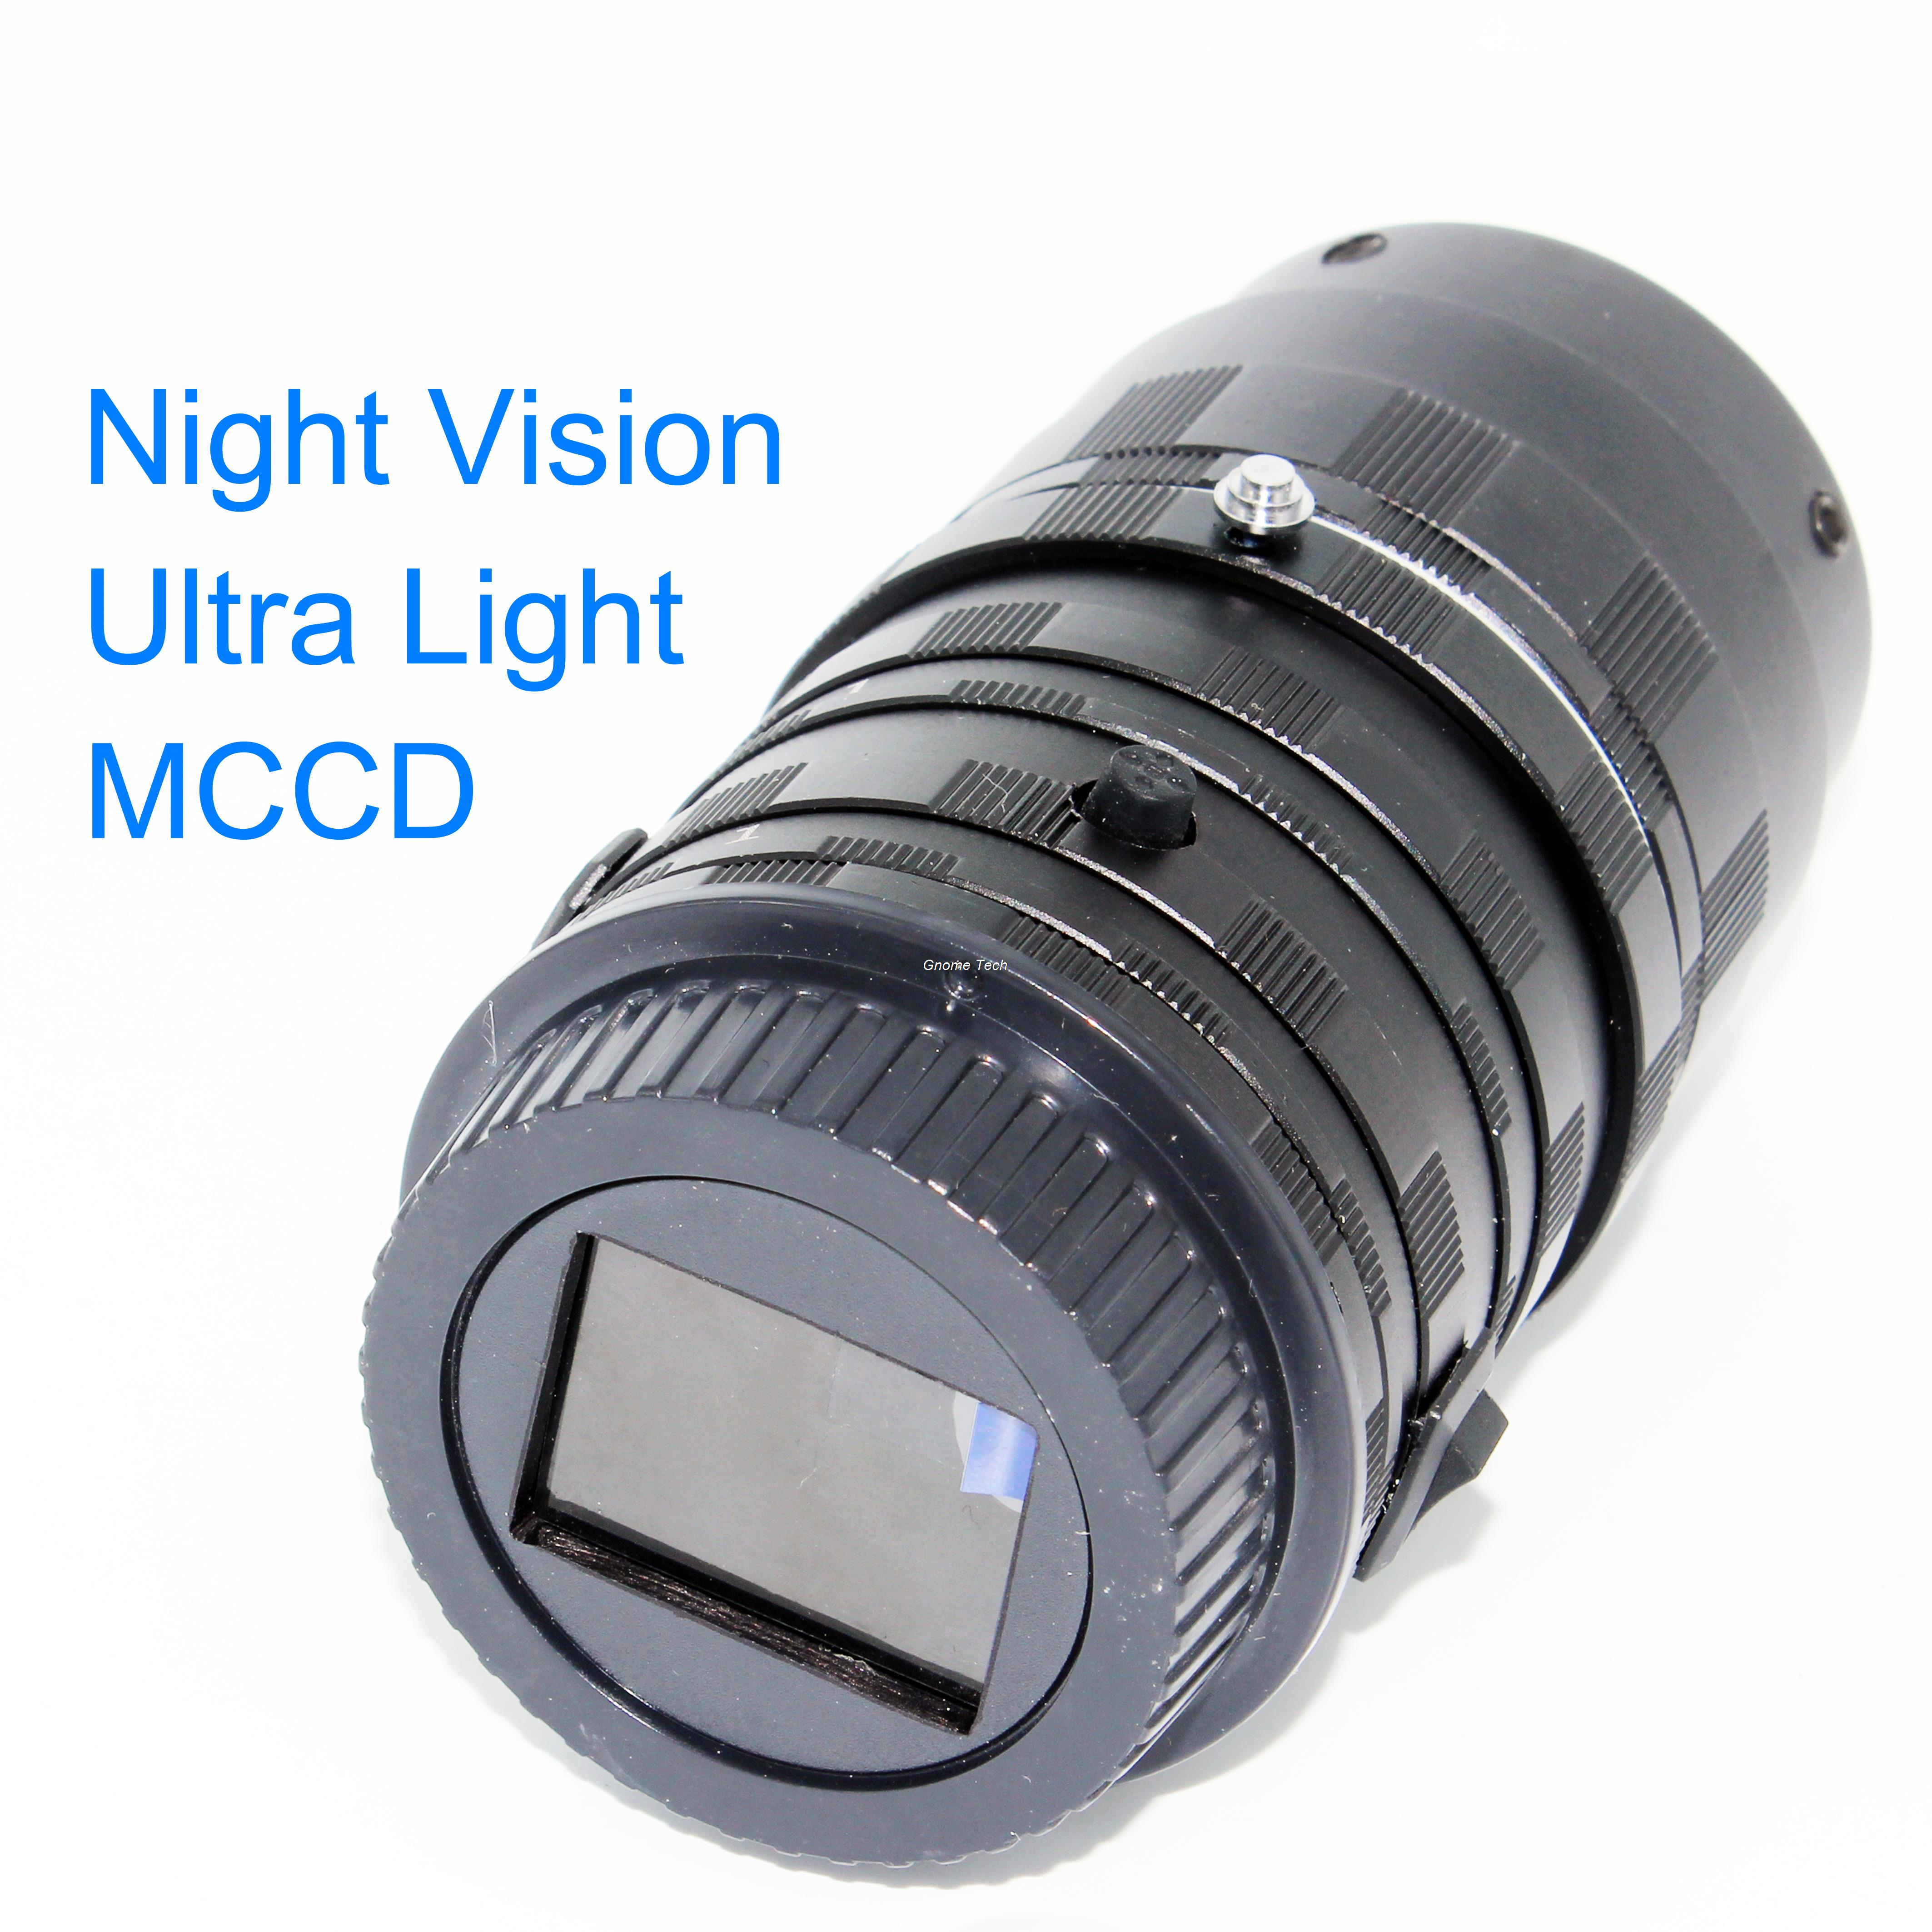 Infrared Electron Eyepiece Night Vision Monocular MCCD Hunting With Display Goggles Scope Device Riflescope Customizable